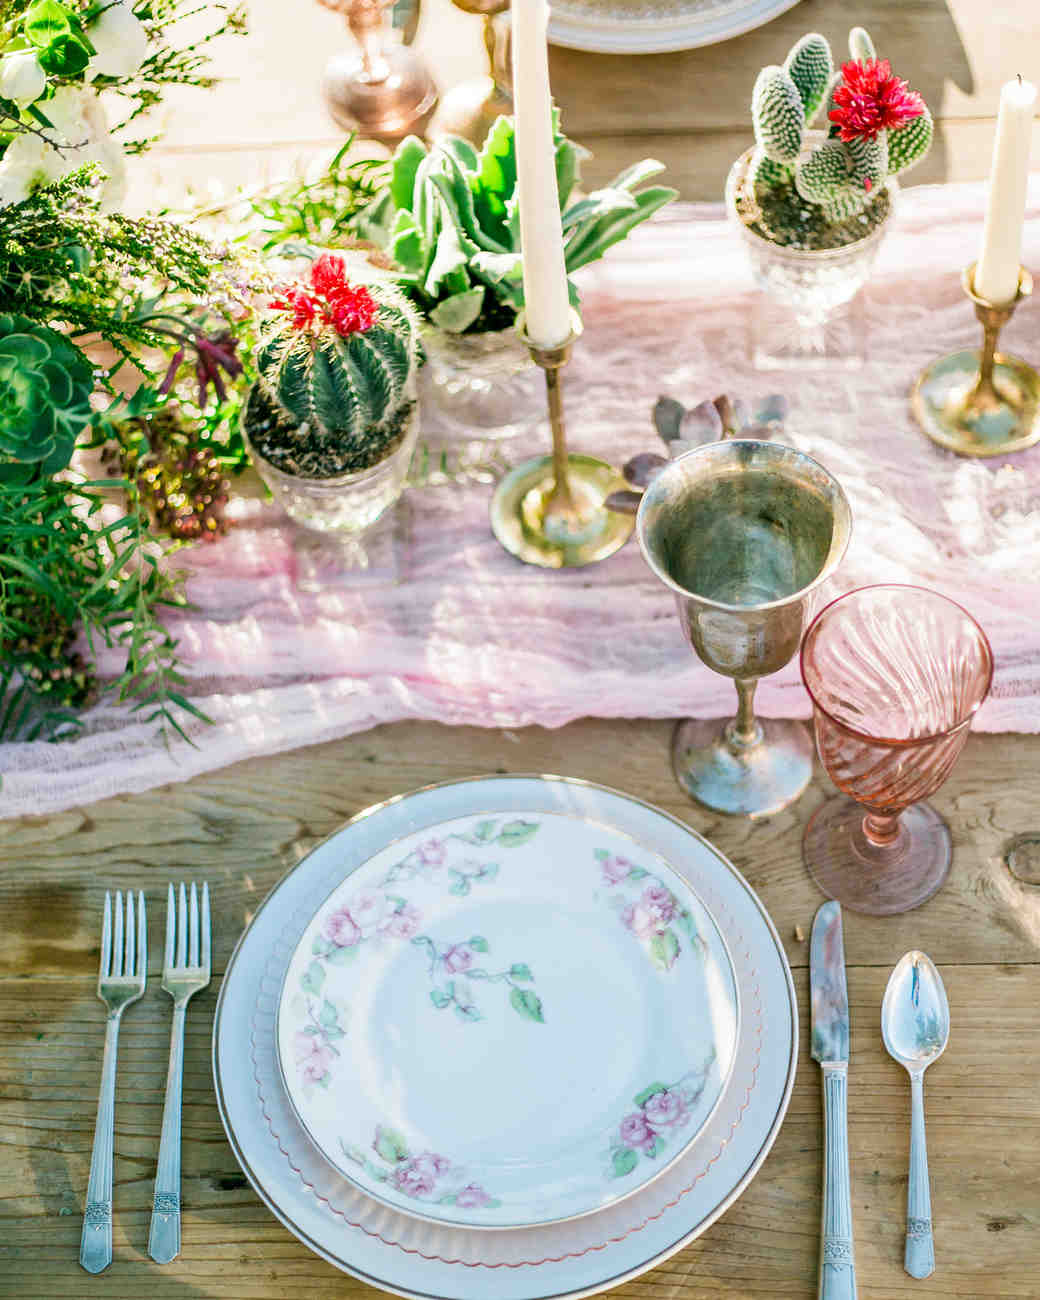 Rustic Tabletop with Mini Cactus Centerpieces